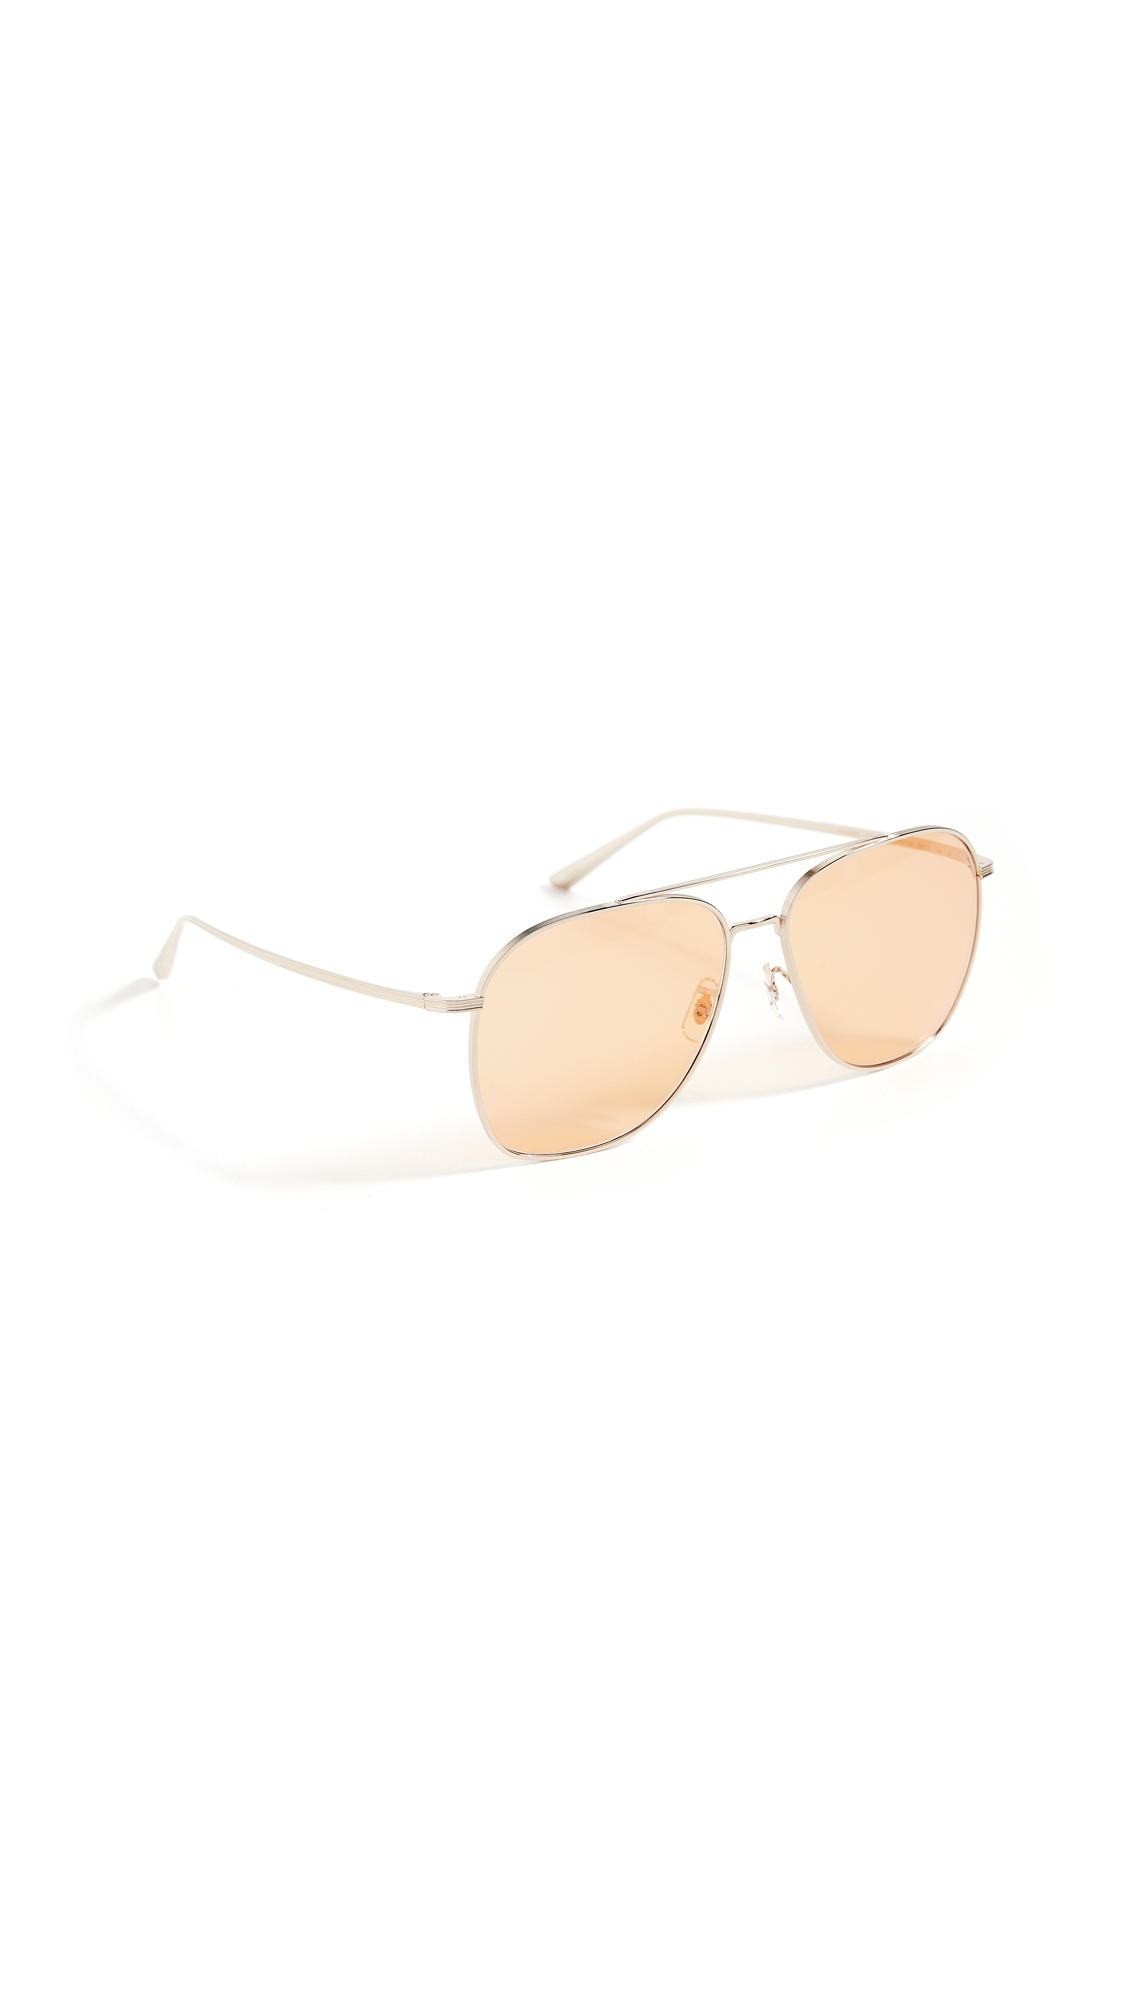 Oliver Peoples The Row Ellerston Sunglasses